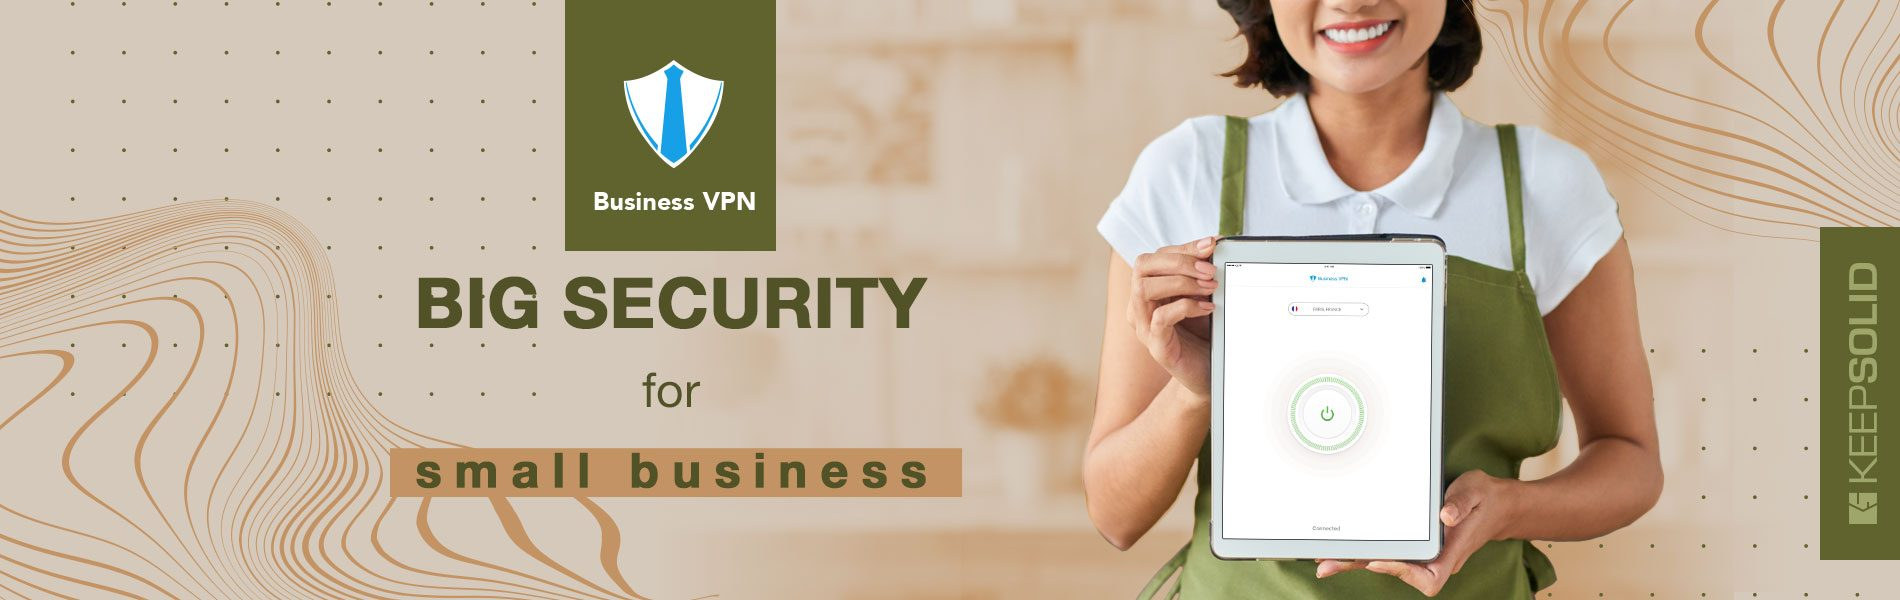 Happy female small business owner showing tablet with Business VPN by KeepSolid securing her small business website